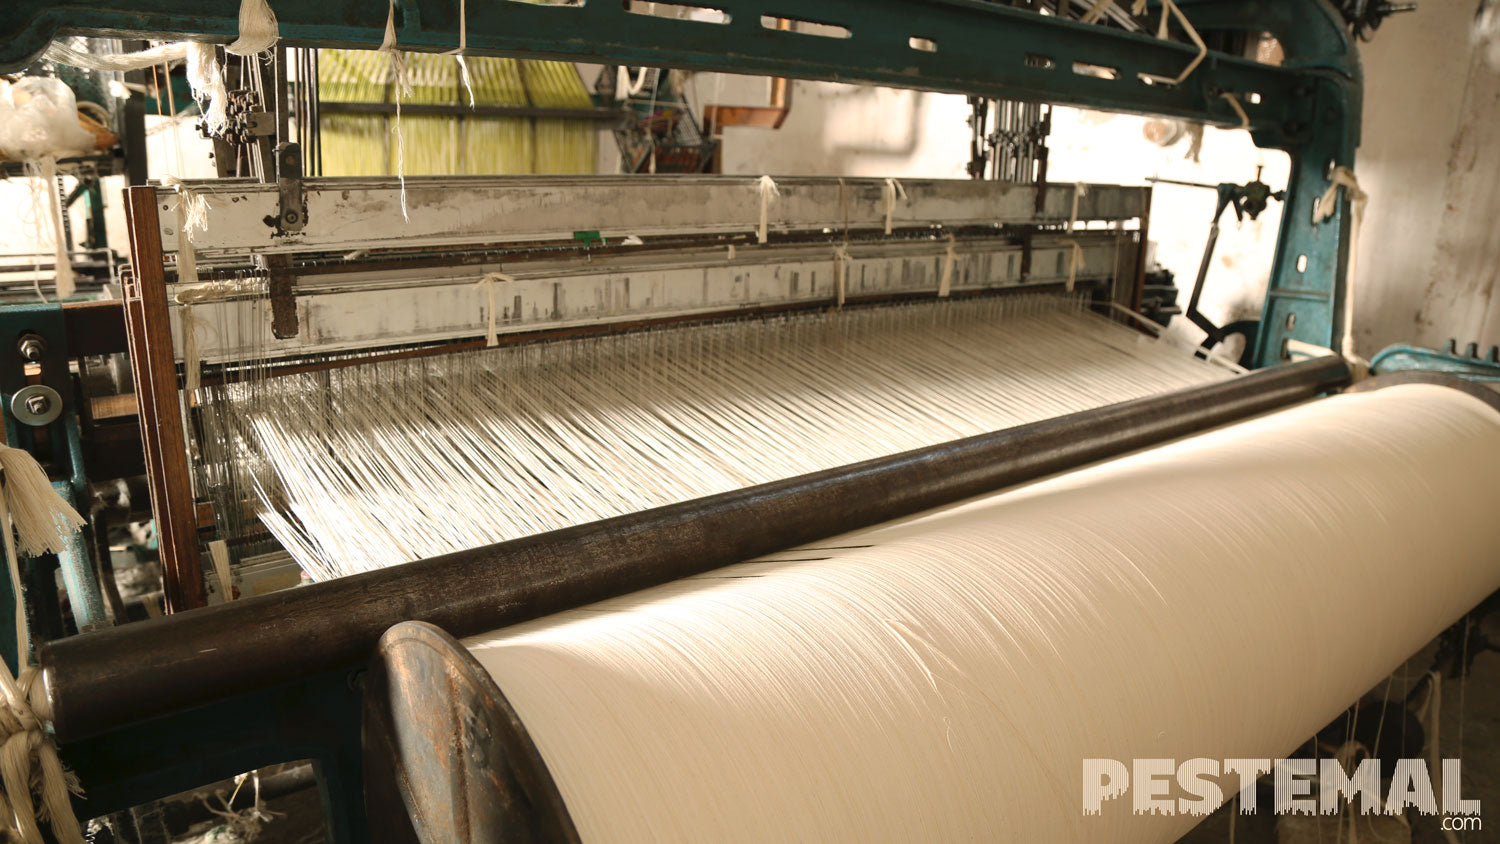 Reasons to Choose Pestemal.com as a Wholesale Turkish Towel Supplier